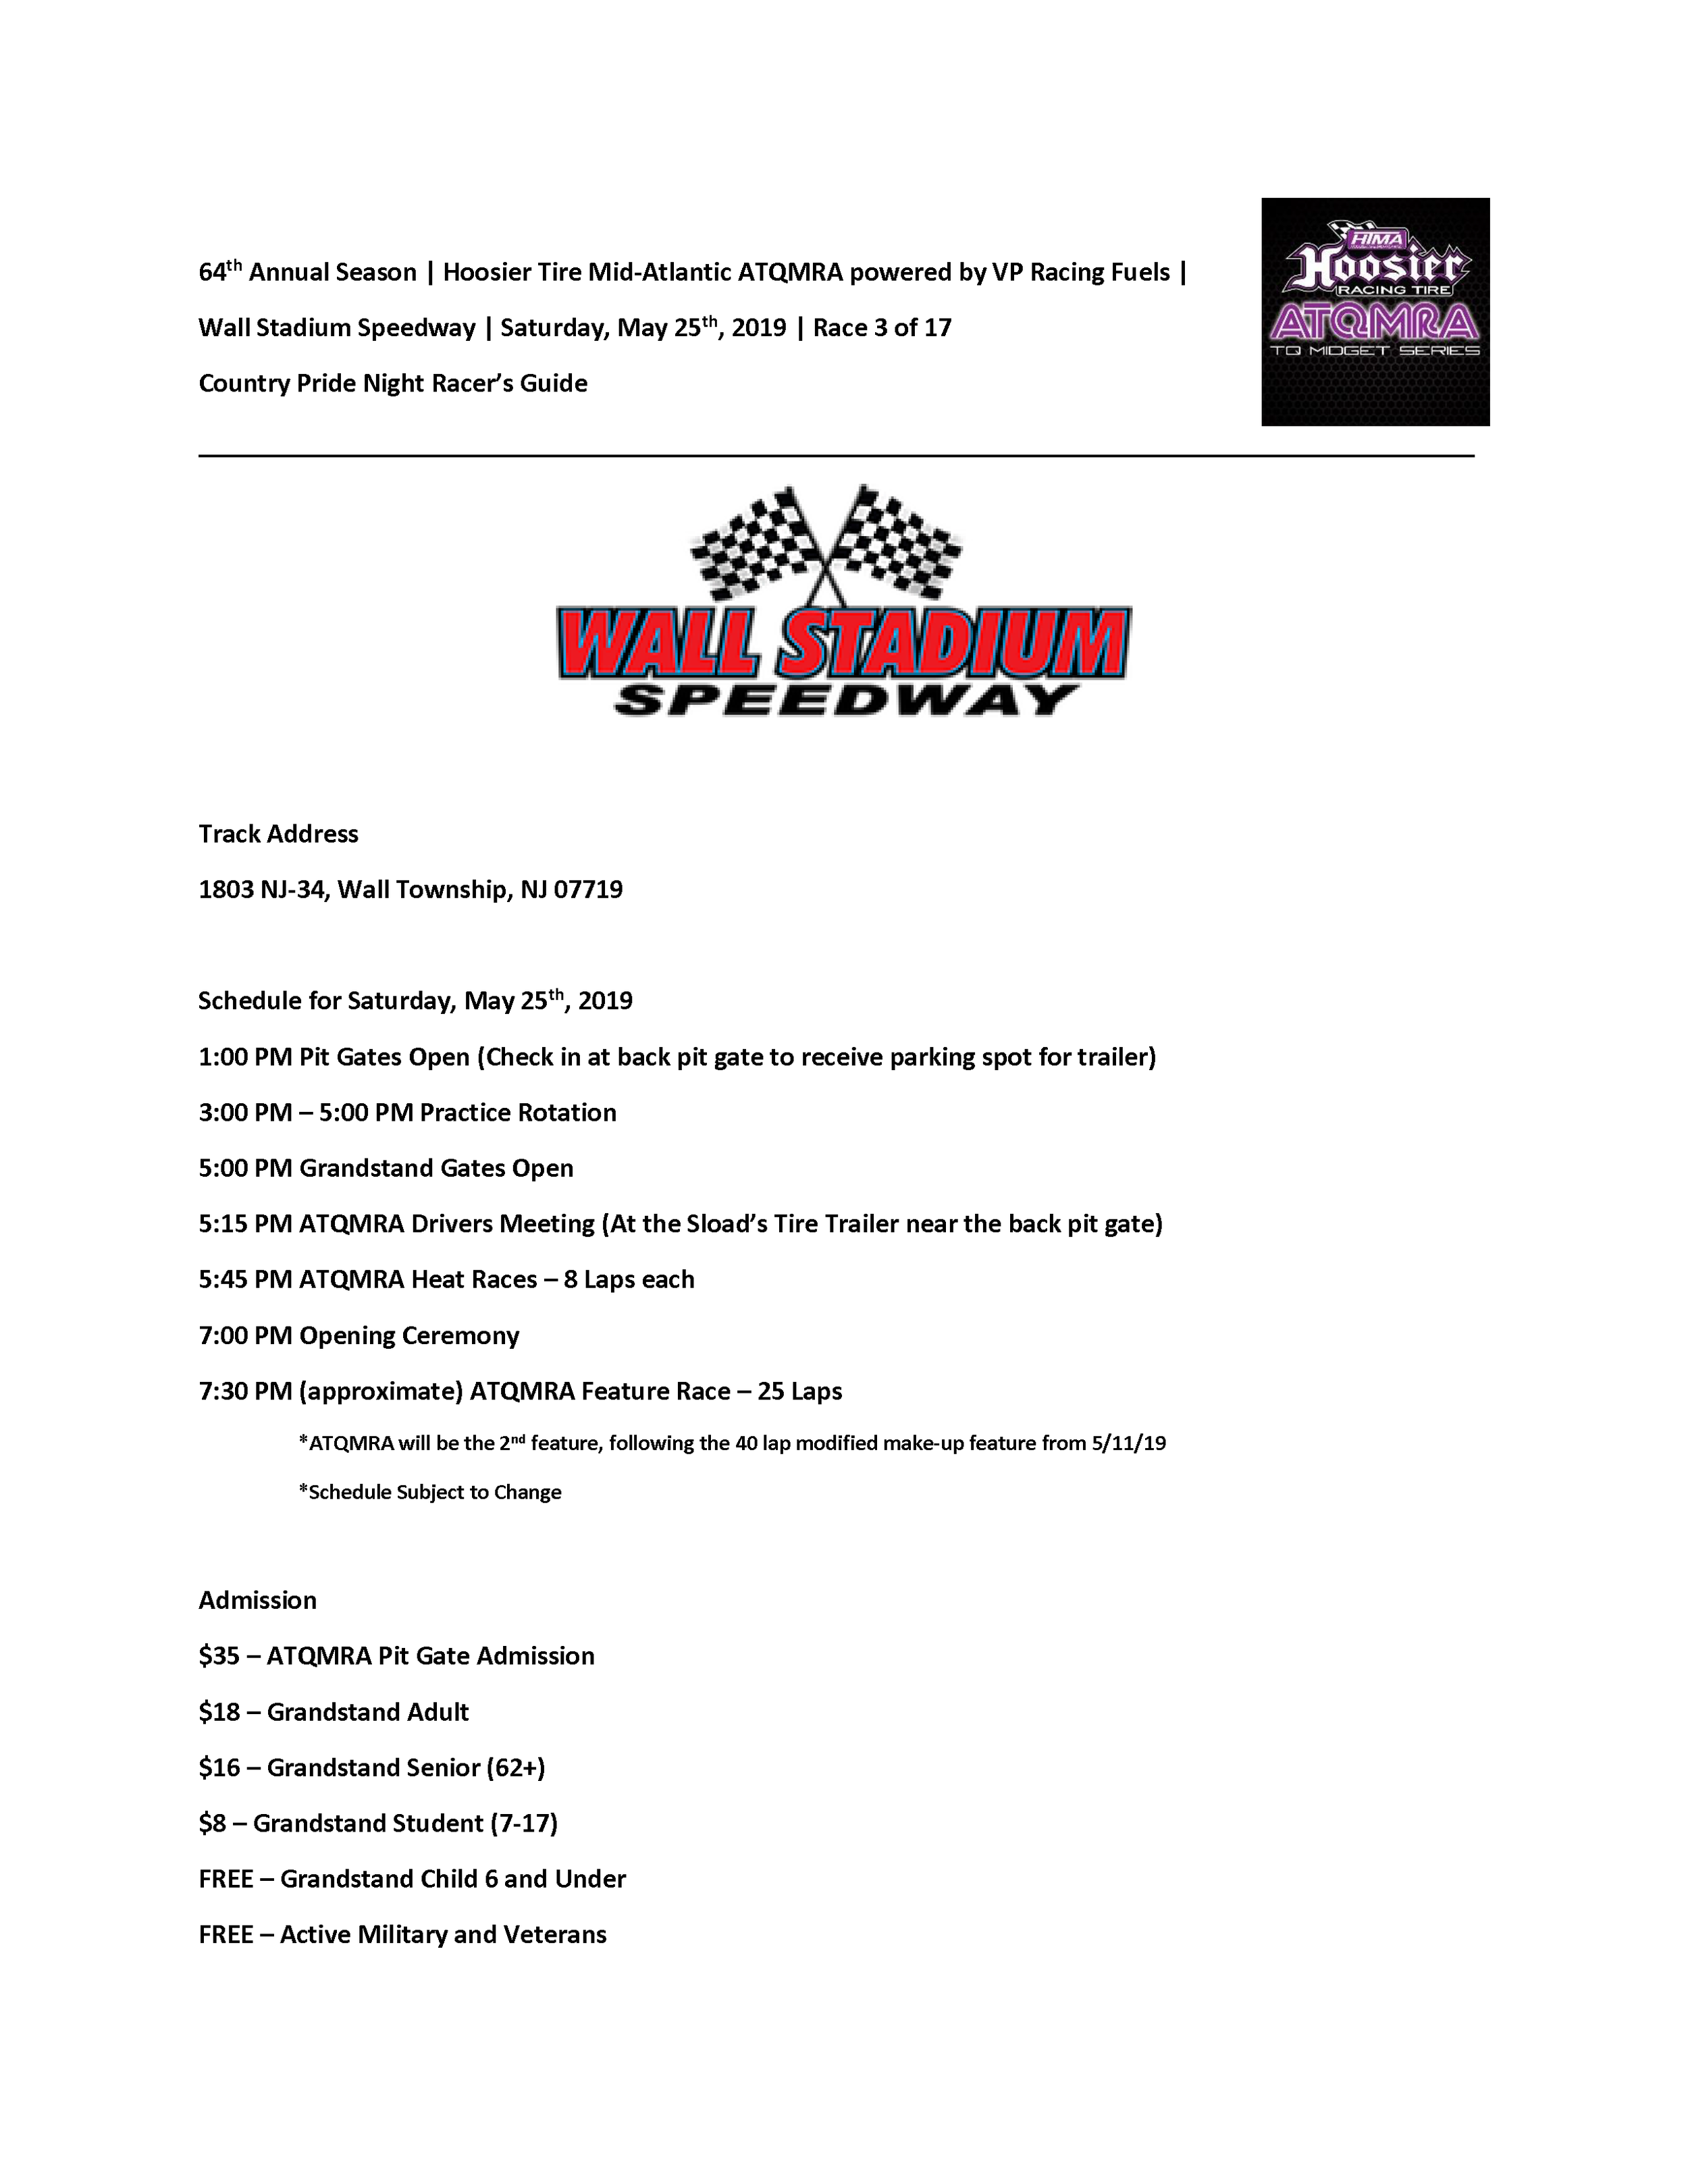 2019 Wall Stadium 1 Racer's Guide.png